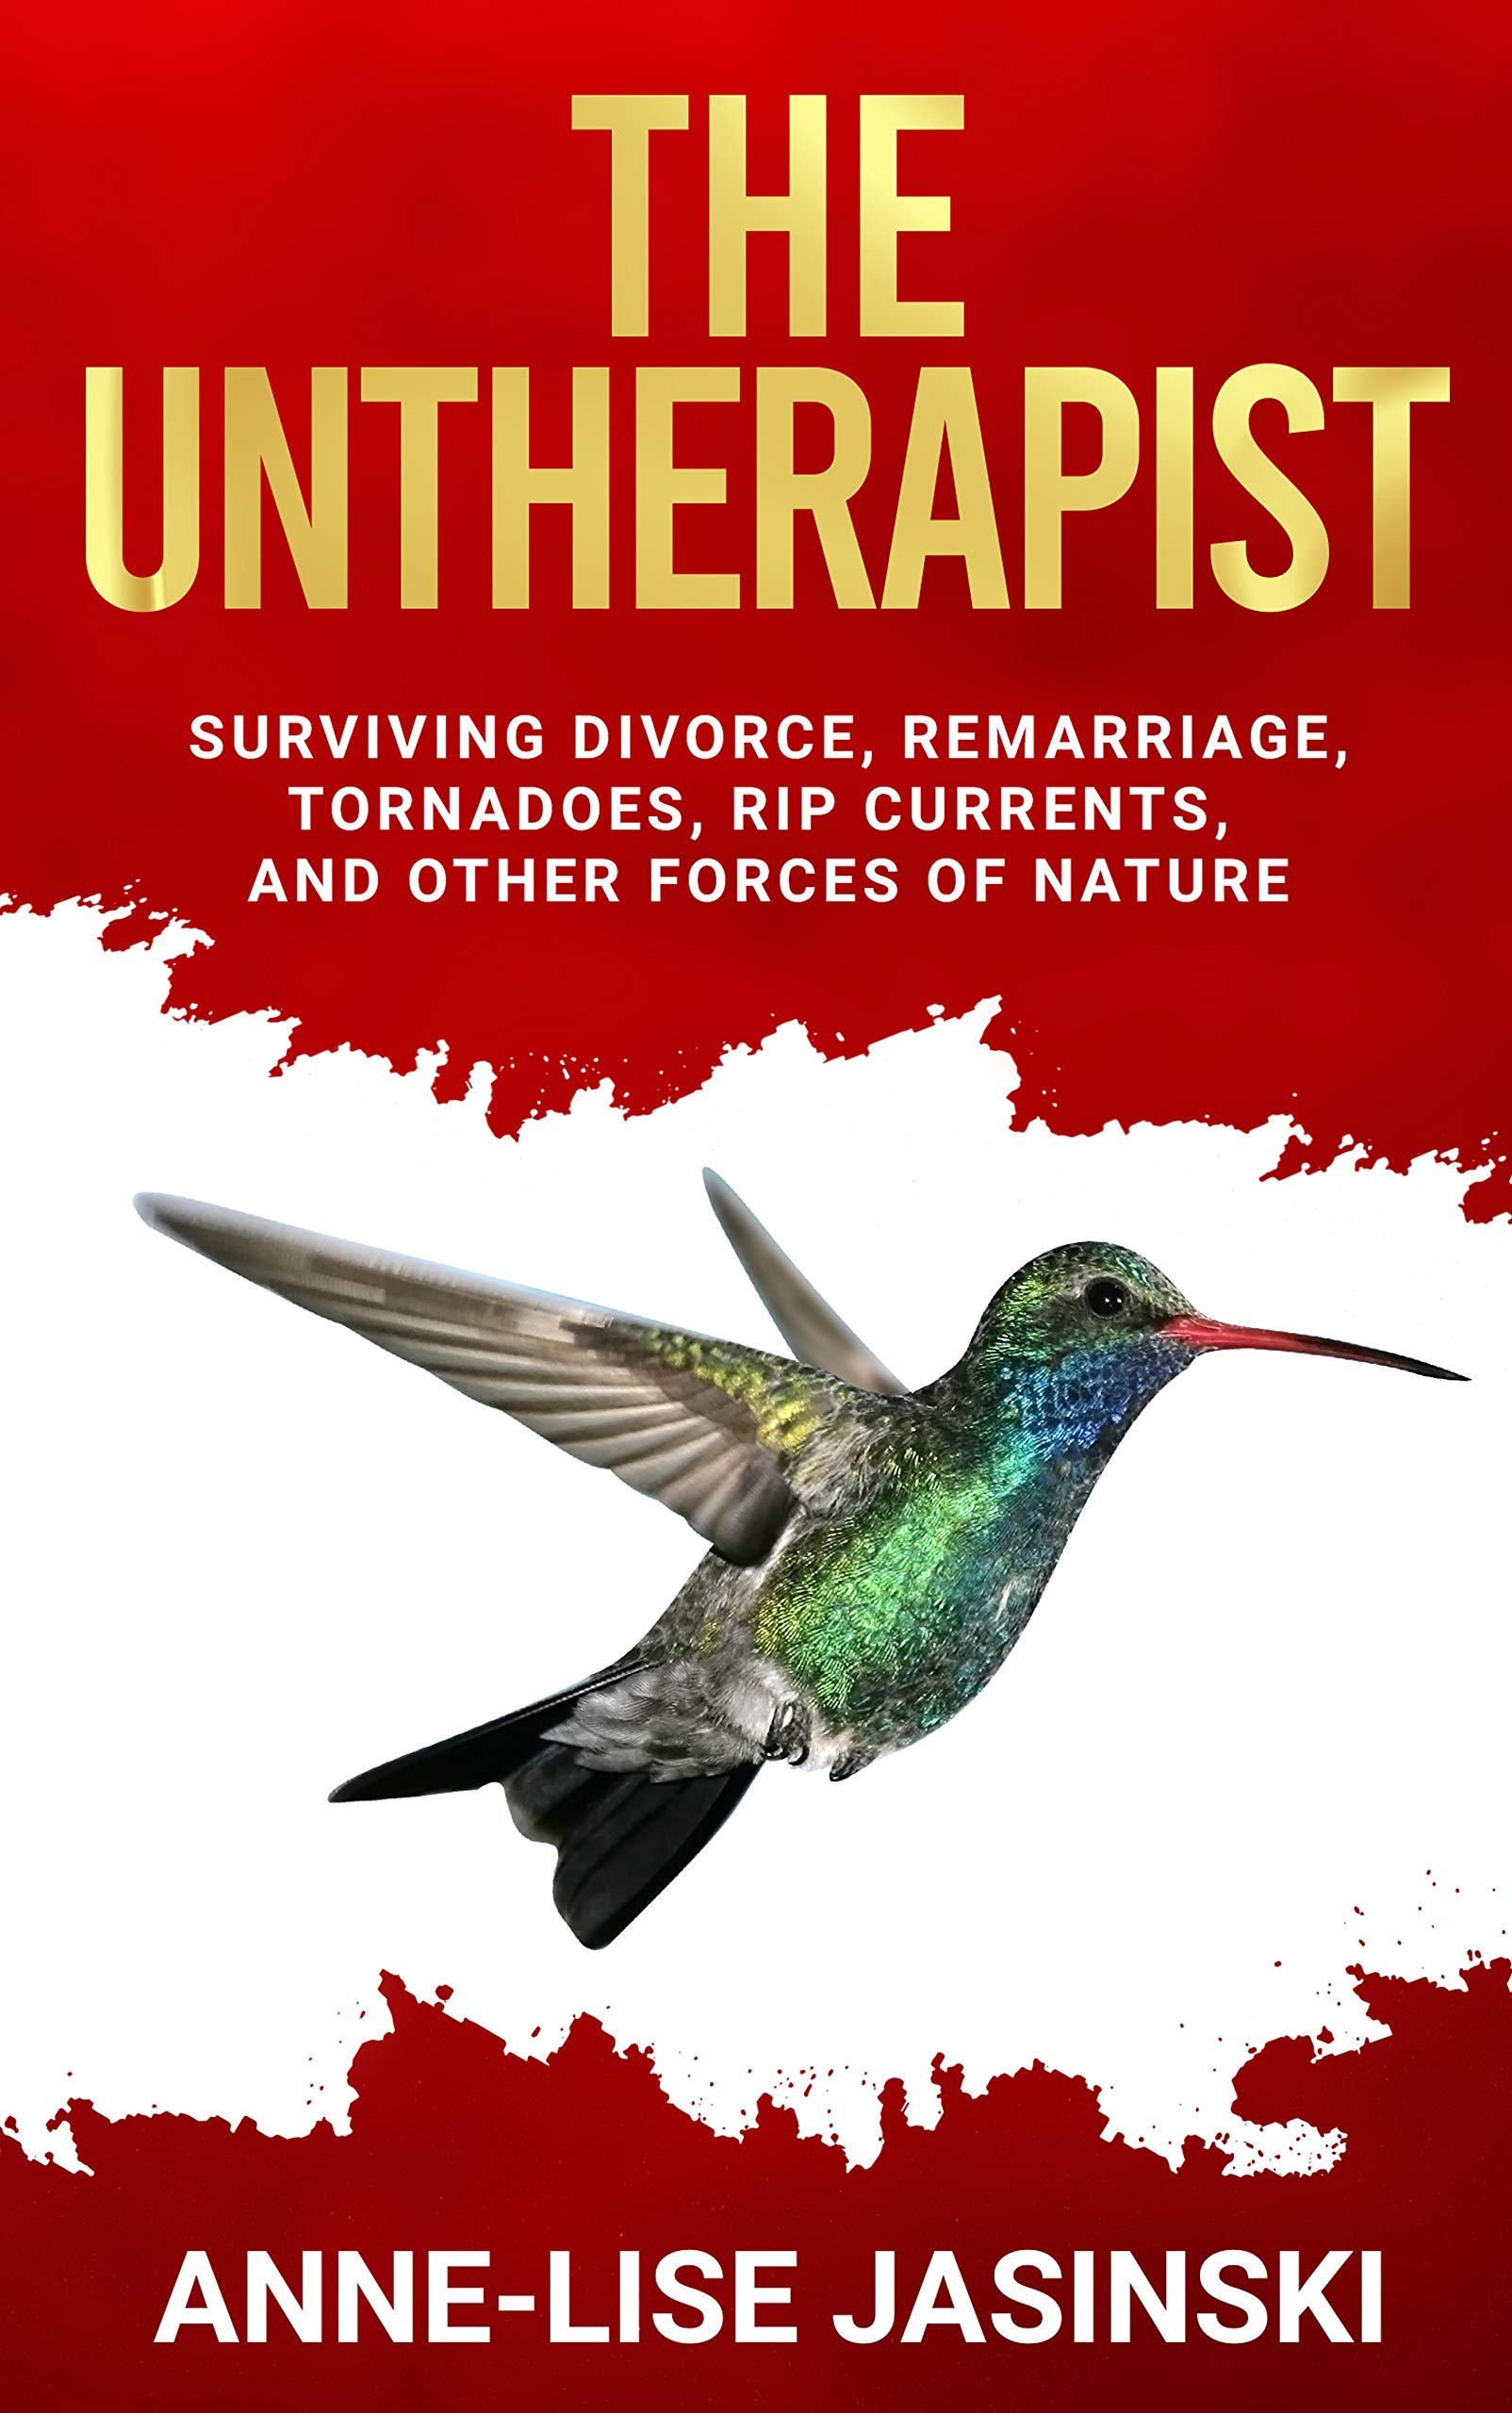 The Untherapist: Surviving Divorce, Remarriage, Tornadoes, Rip Currents, and Other Forces of Nature